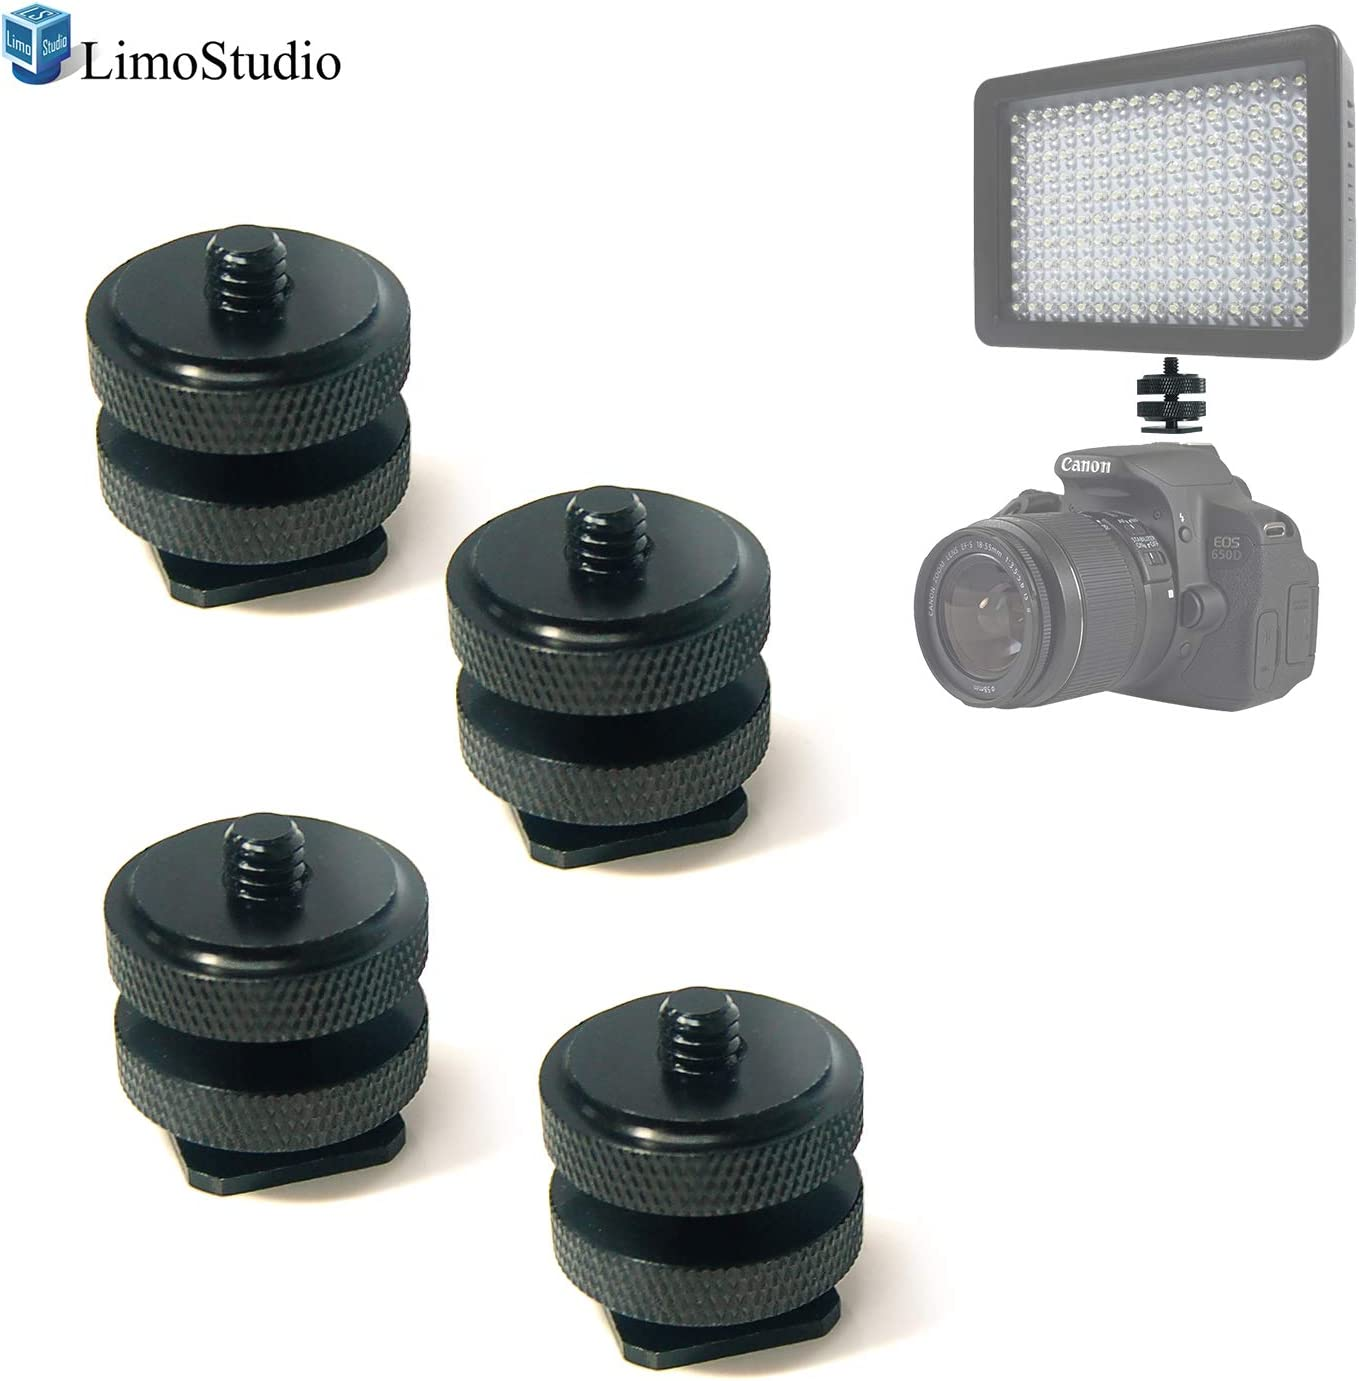 Flash Shoe Mount for DSLR Camera AGG2527 LimoStudio Universal Mini Black Double Screw Angle 1//4 Hot Shoe Mount Adapter Bracket 4-Pack